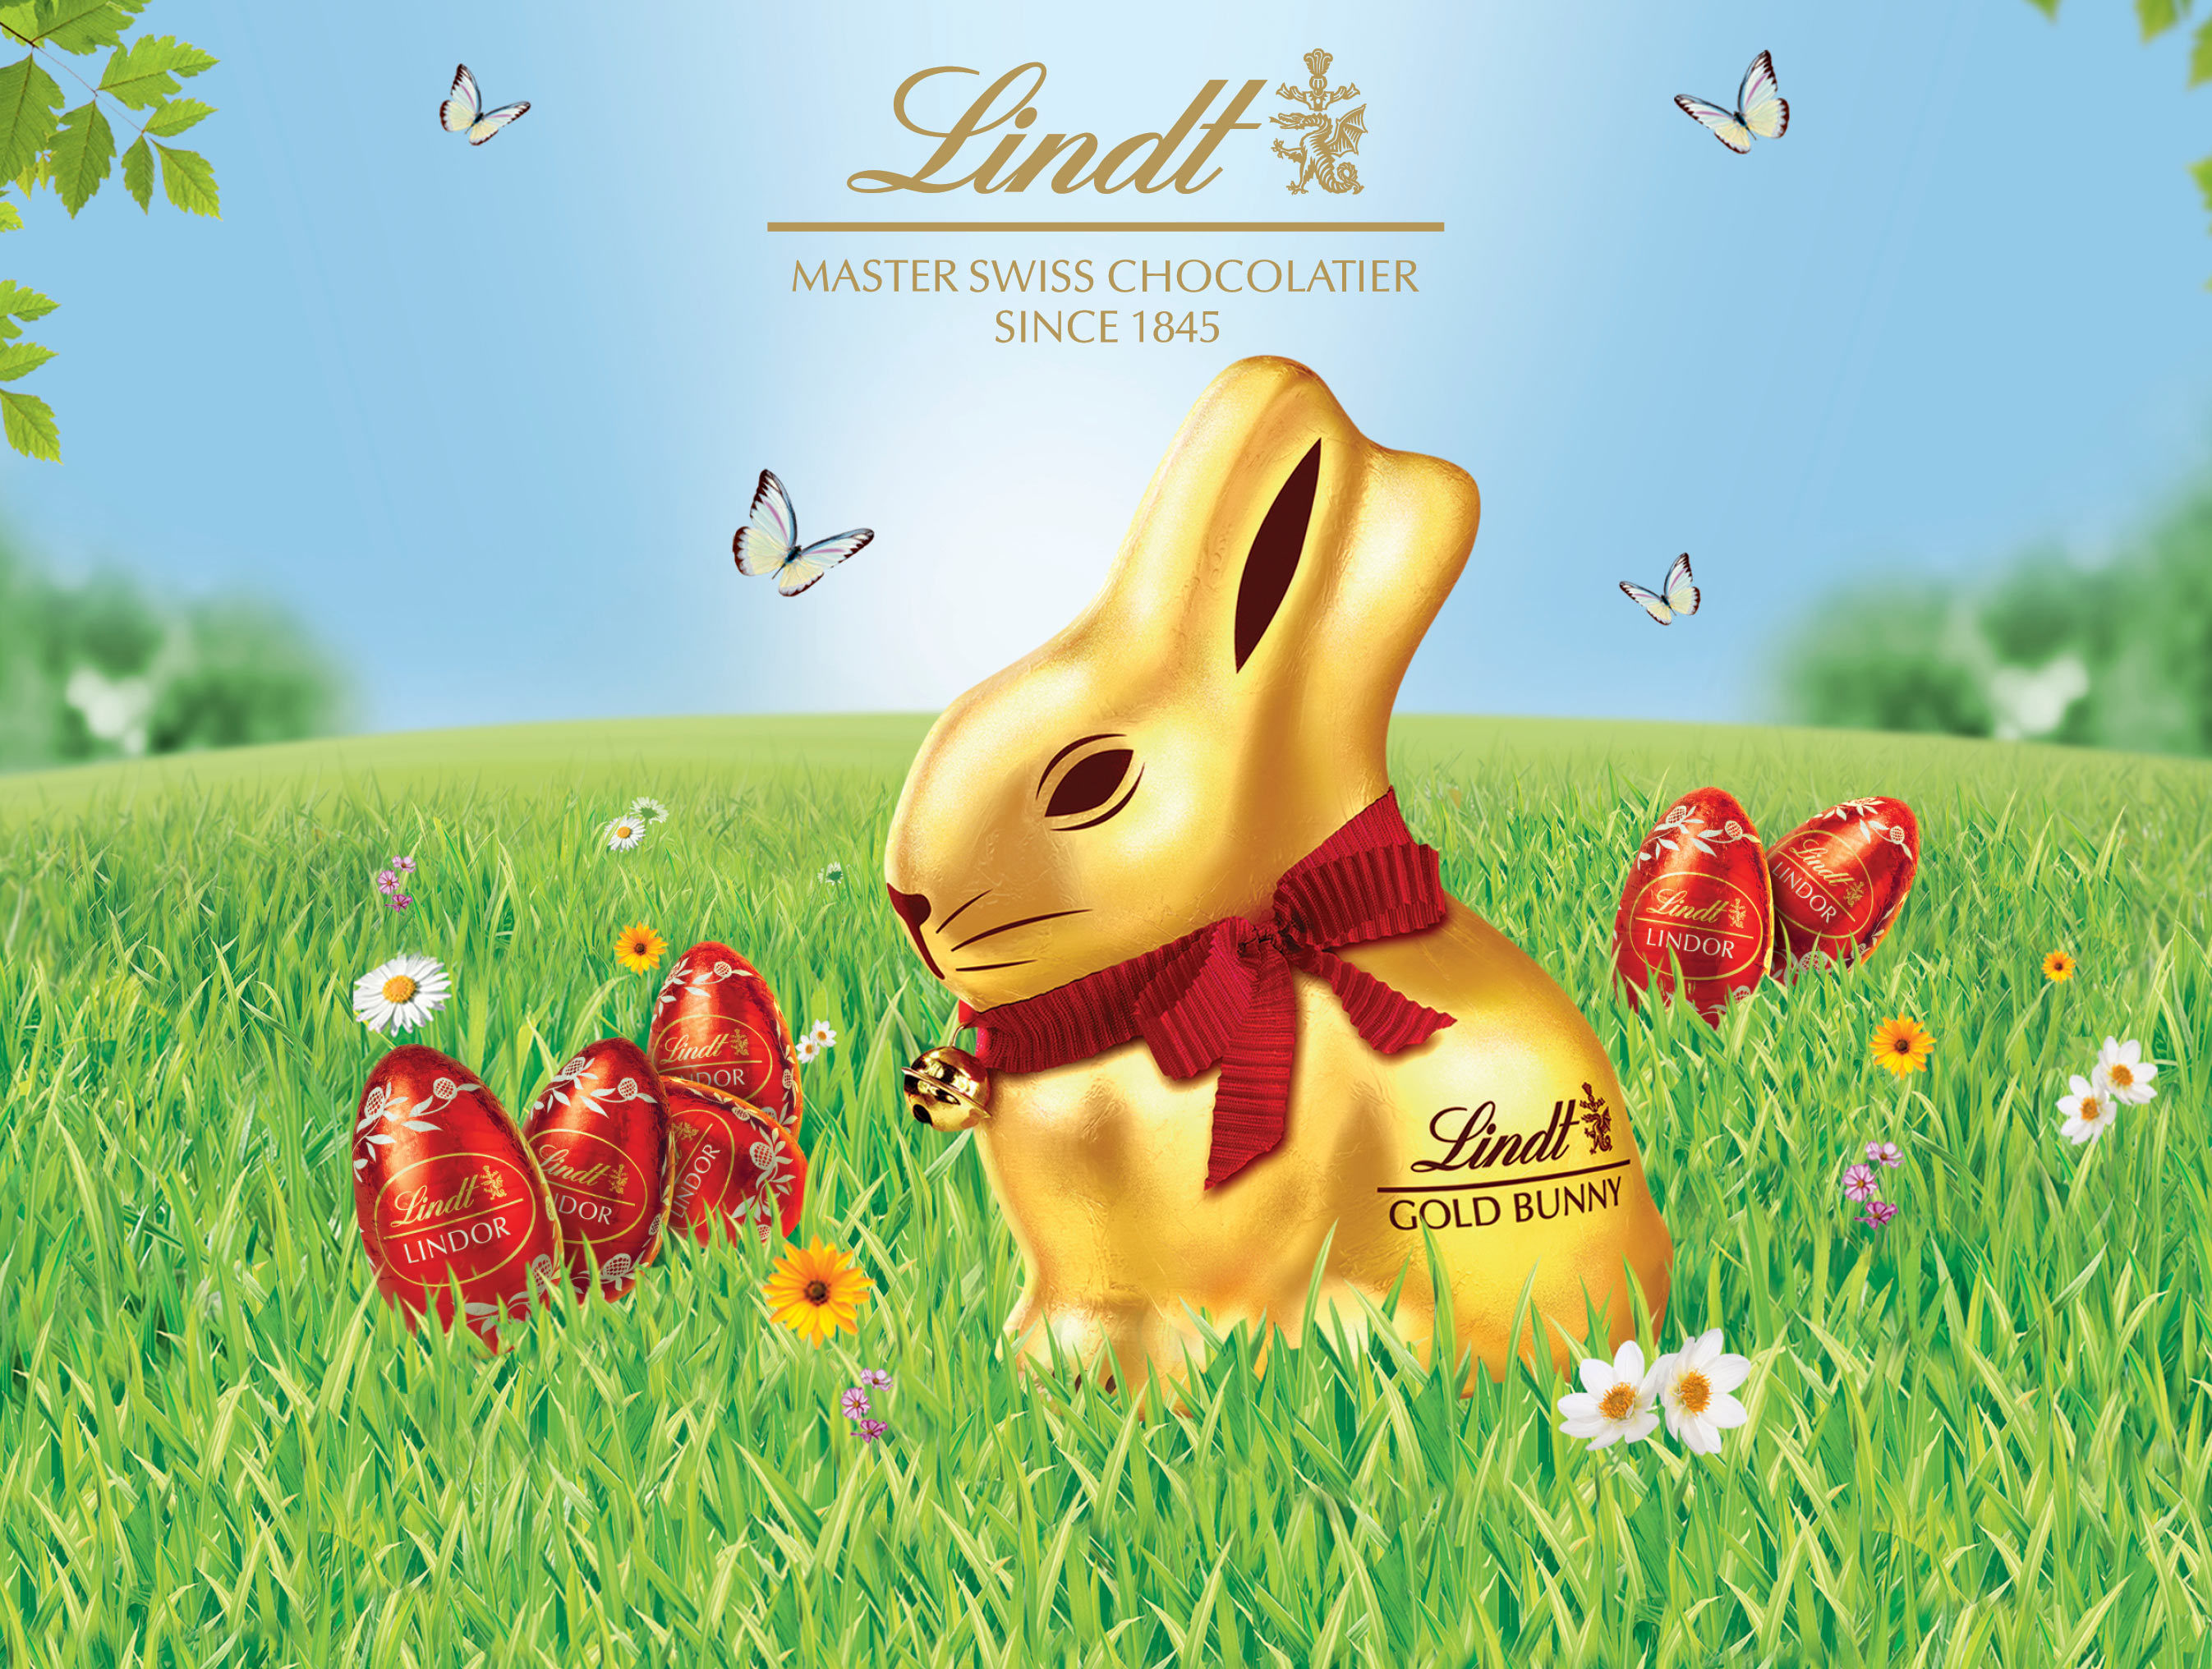 Join in the Lindt Easter hunt